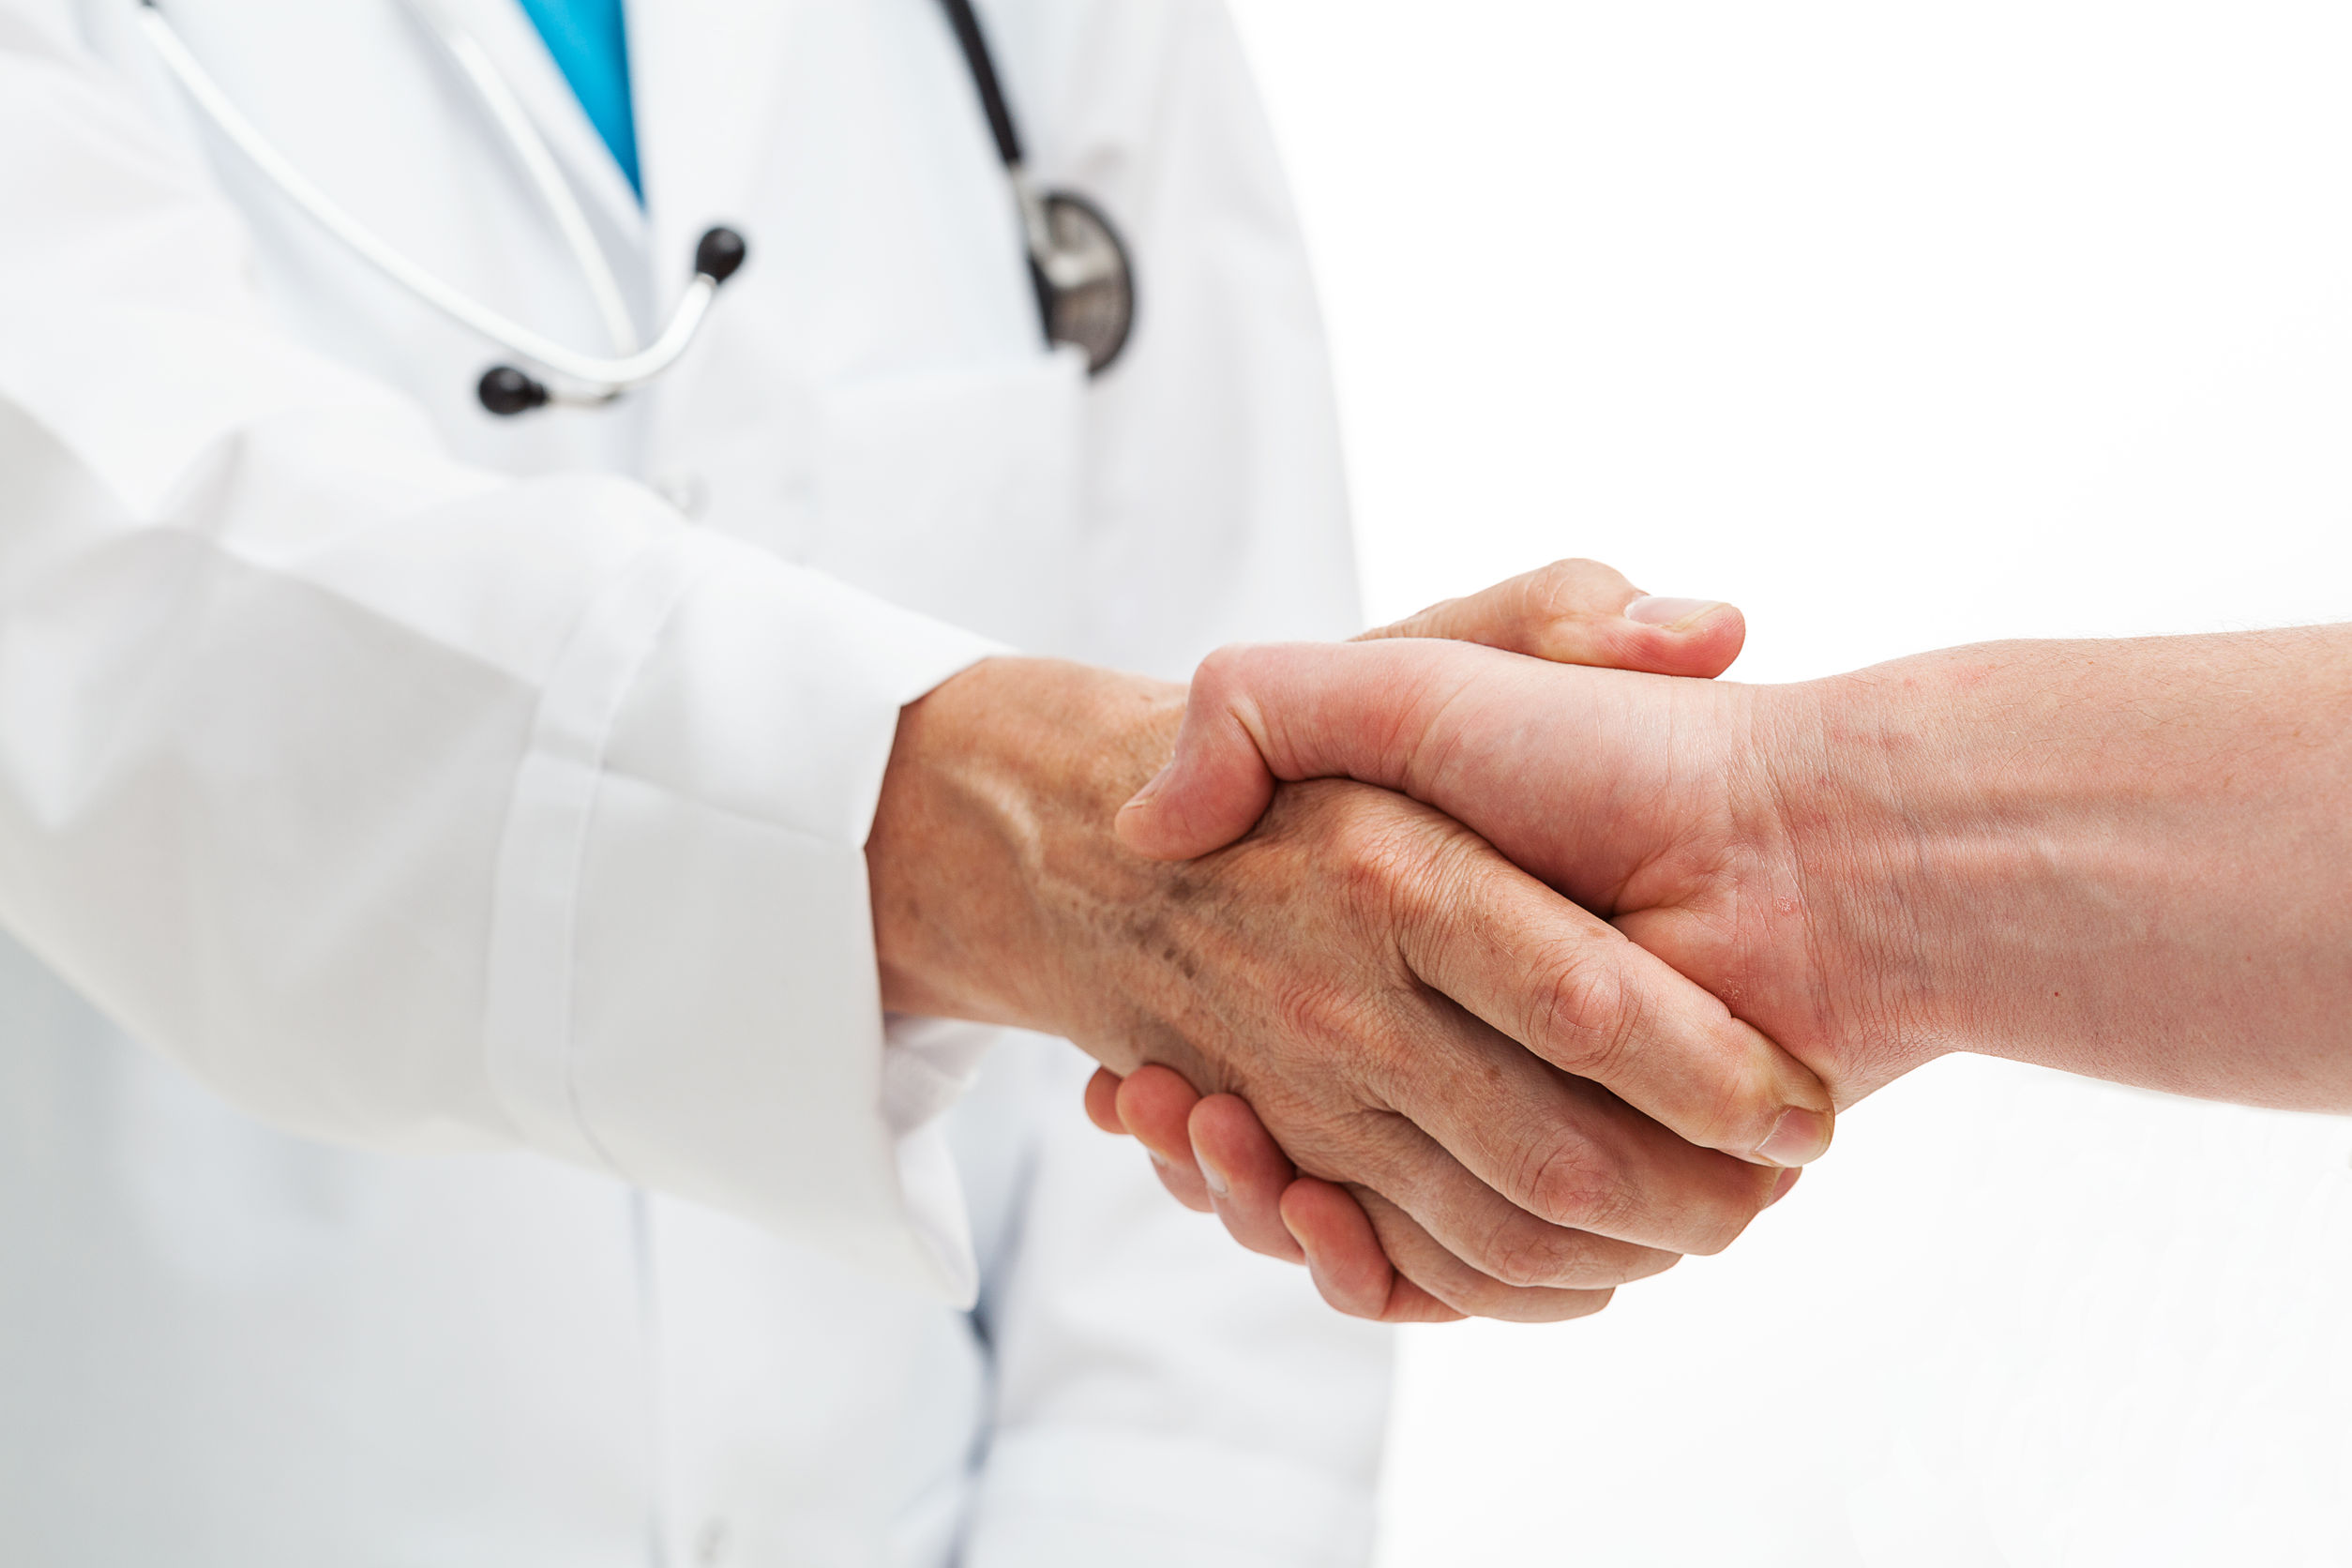 22218434 - a person shaking hands with a doctor